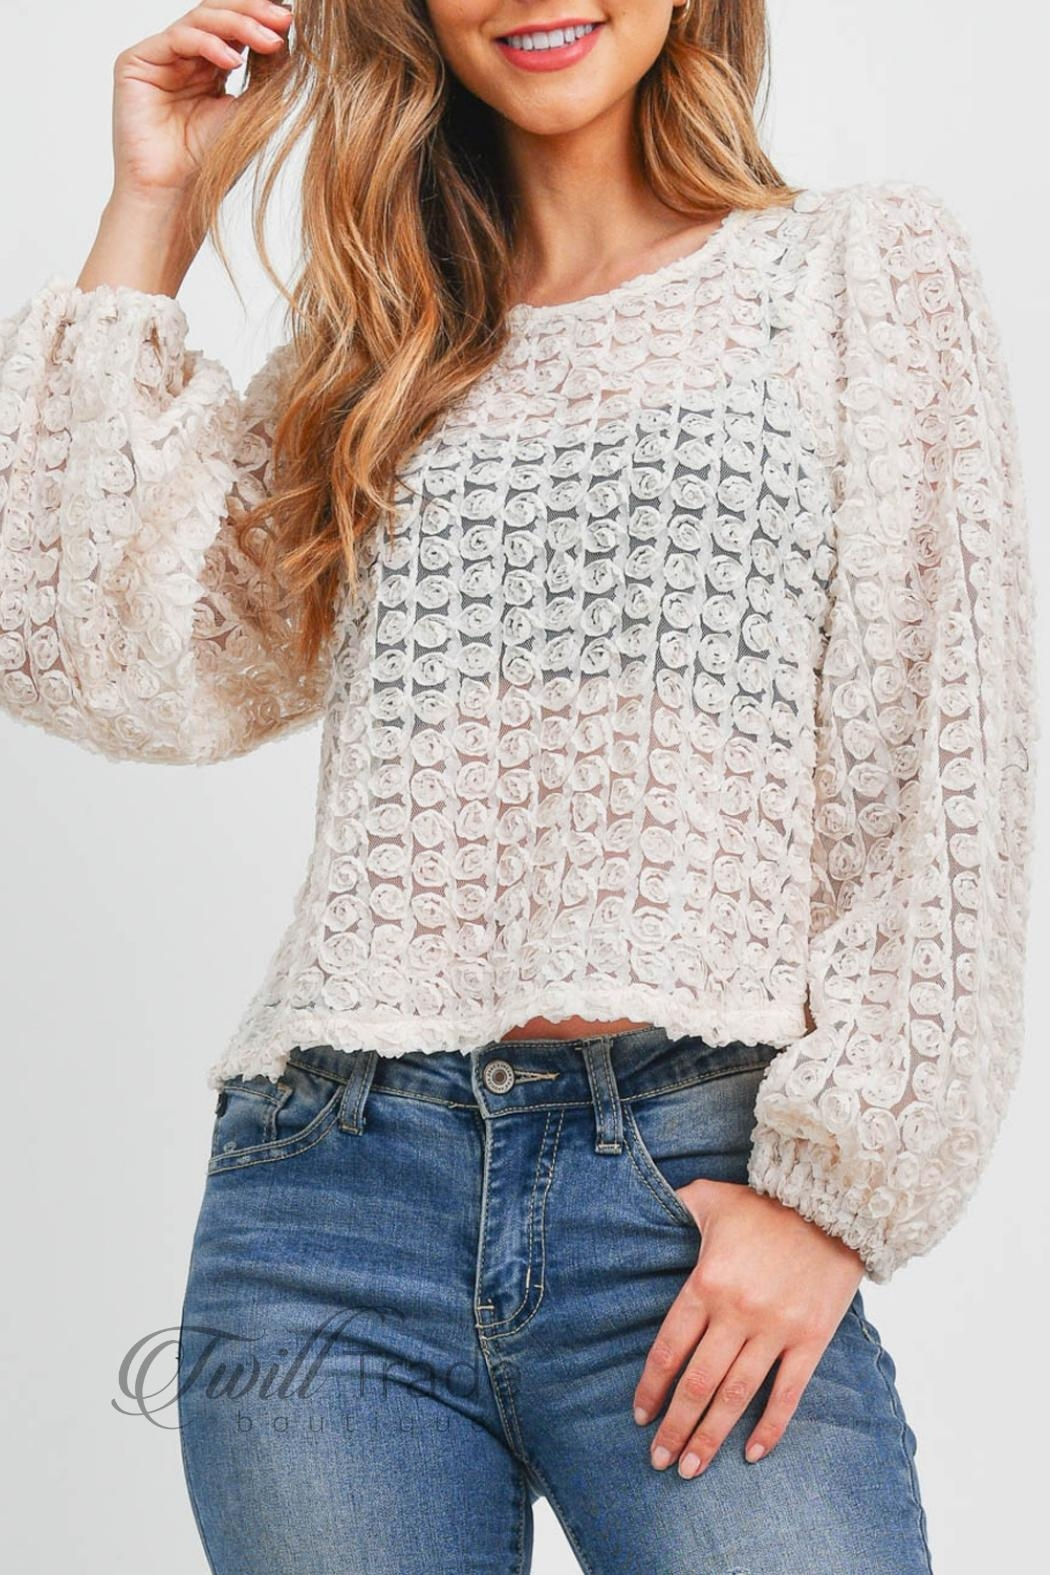 LoveRiche Puff Sleeve Top - Main Image